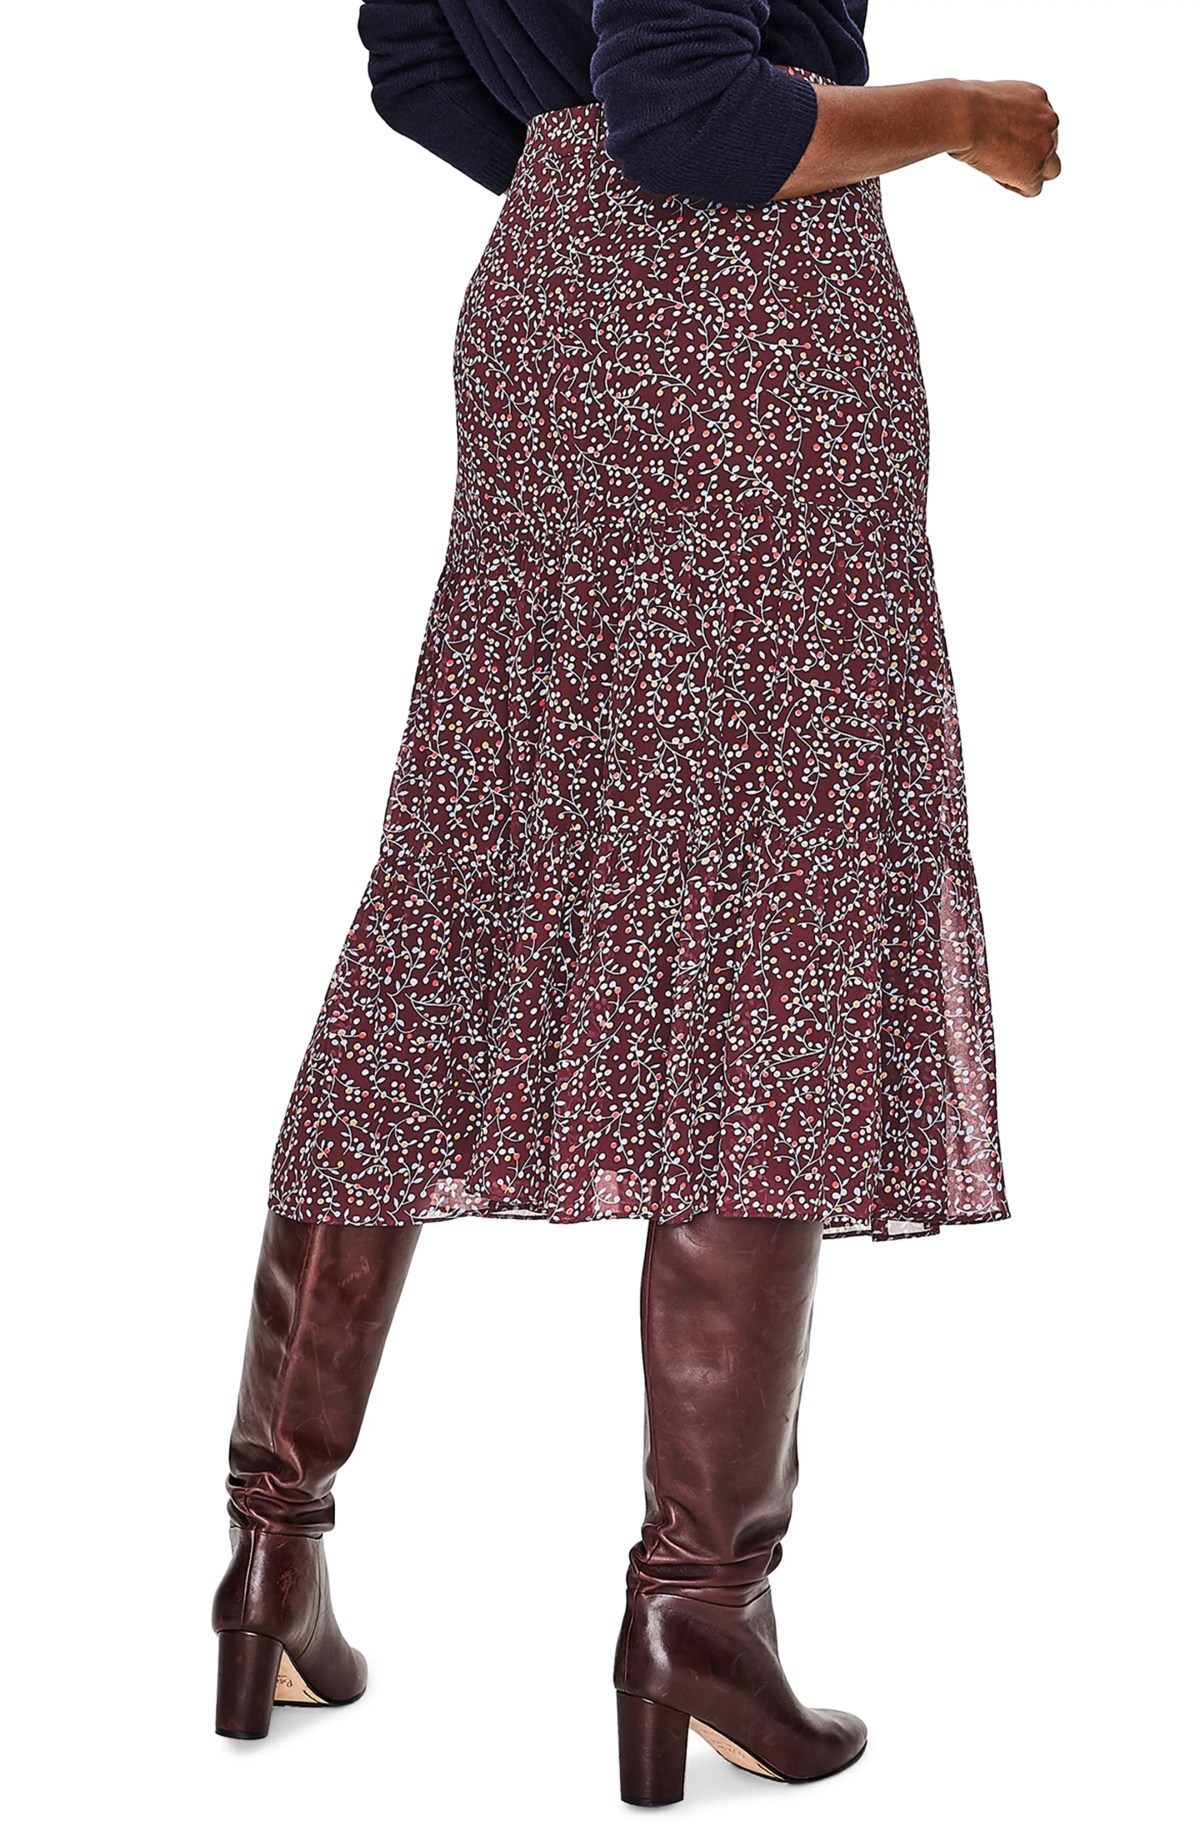 Frome Midi Skirt,                         Alternate,                         color, DARK BURGUNDY TWINKLE VINE